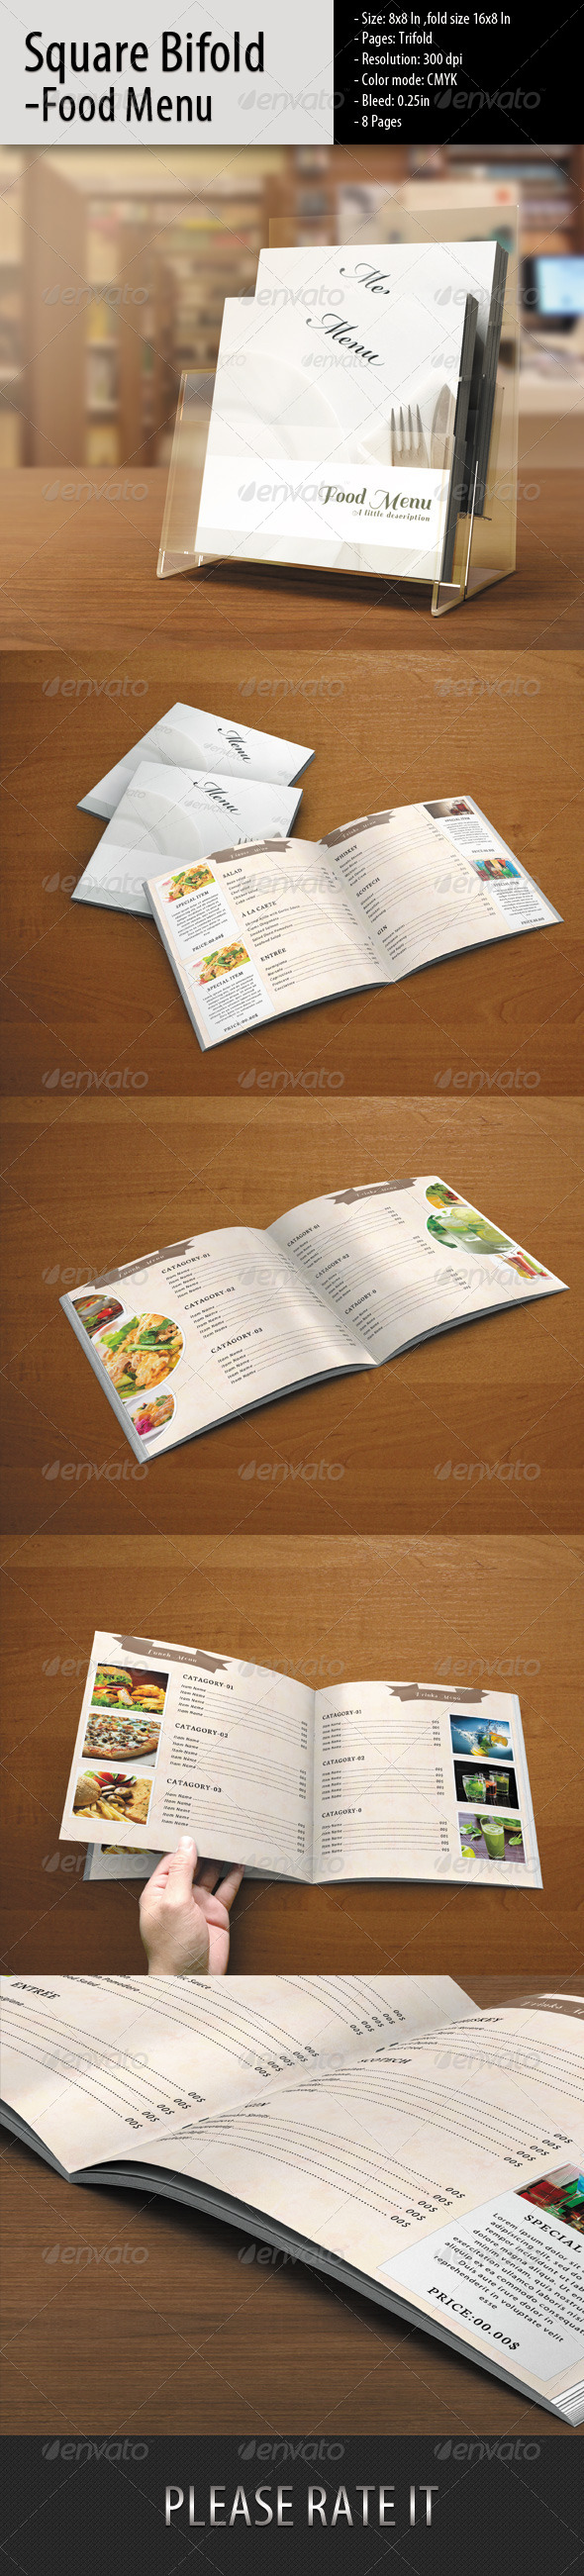 Square Bifold-Simple Food Menu